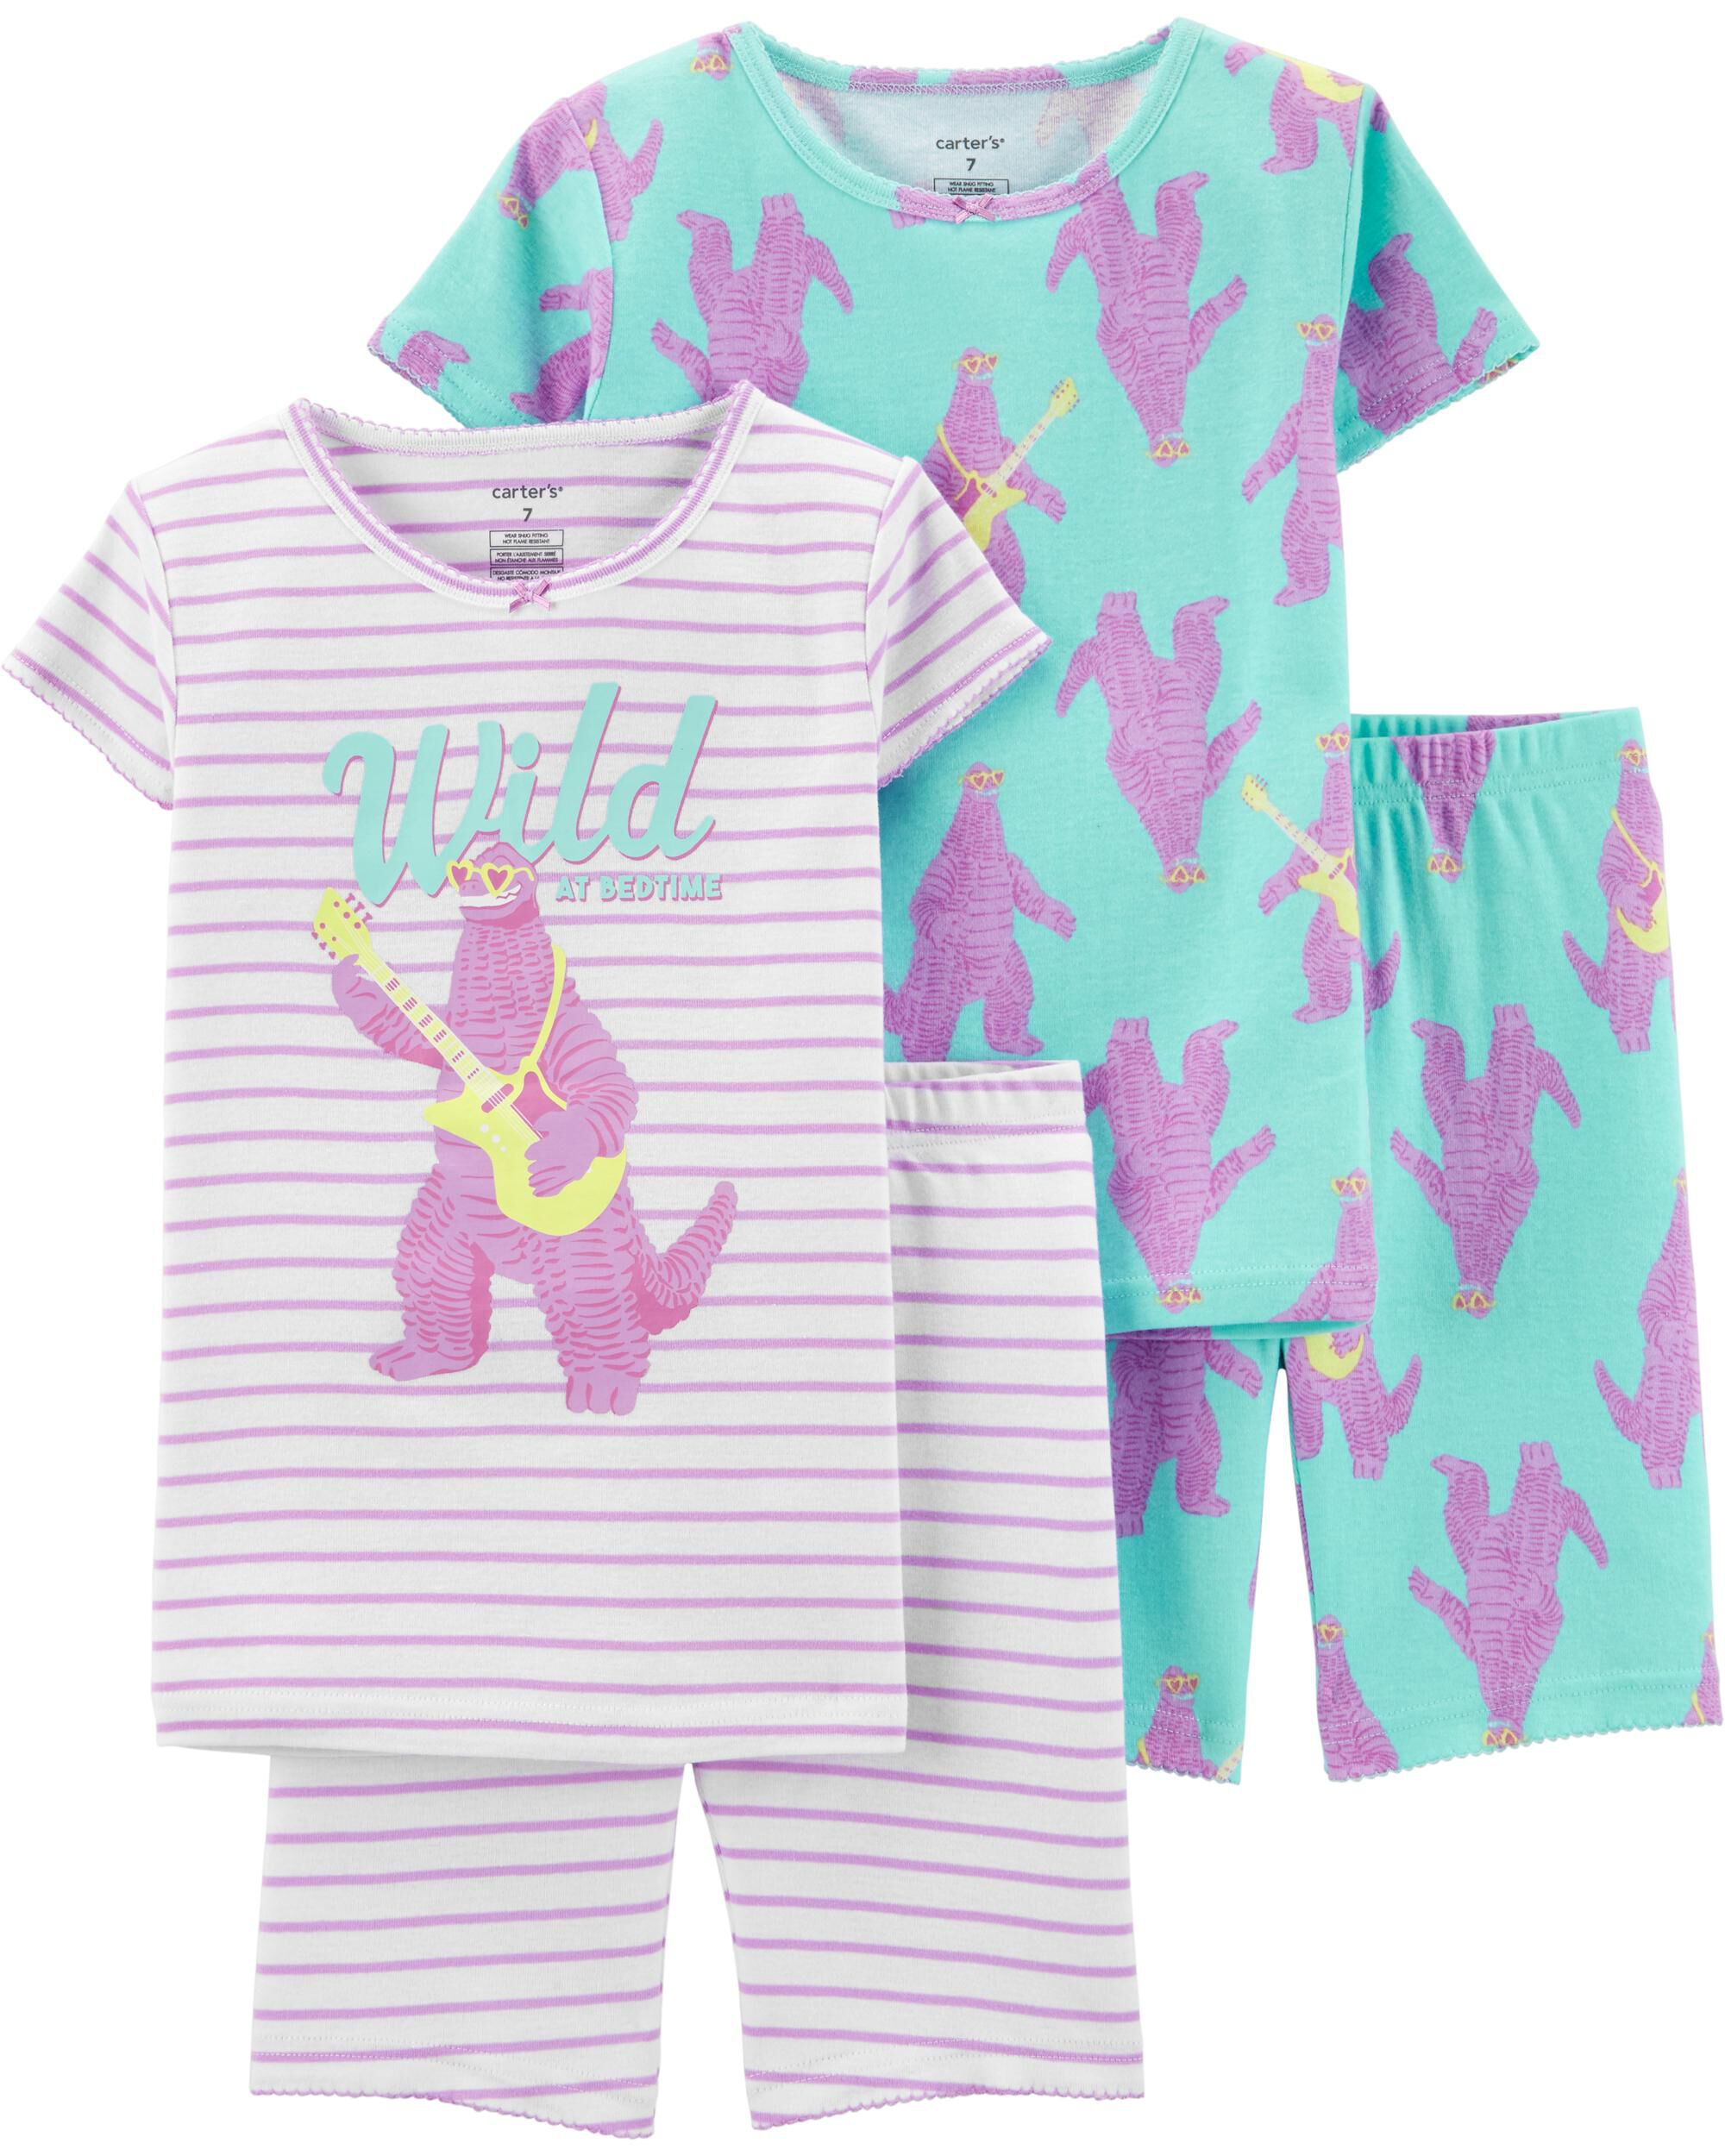 Girls' Clothing (newborn-5t) Carters Girls Pajamas Size 3t Pink Penguin Fleece Pjs Pants Long Sleeve Clothing, Shoes & Accessories